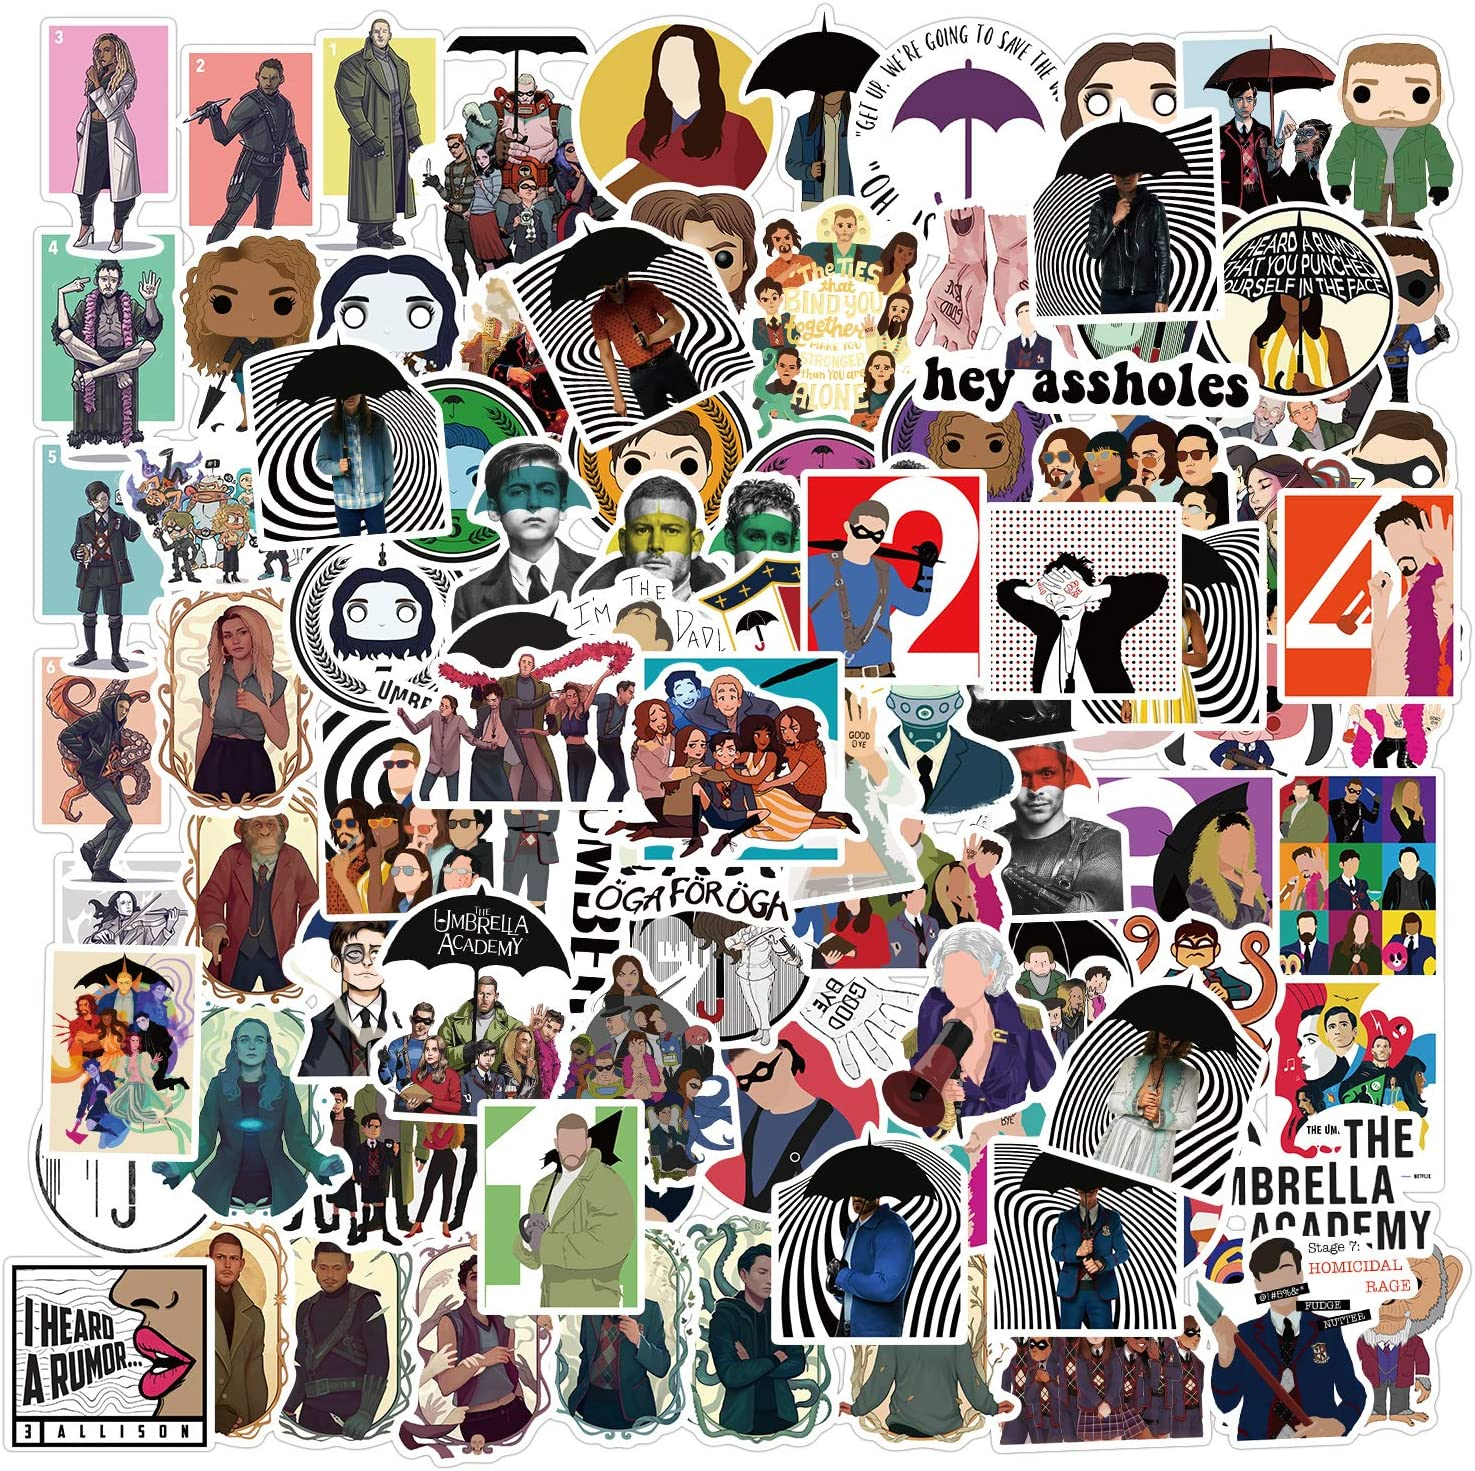 ZHUANG Genuine Free Shipping Umbrella Academ_y Surprise price Stickers 100pcs Show Waterproof TV Stic